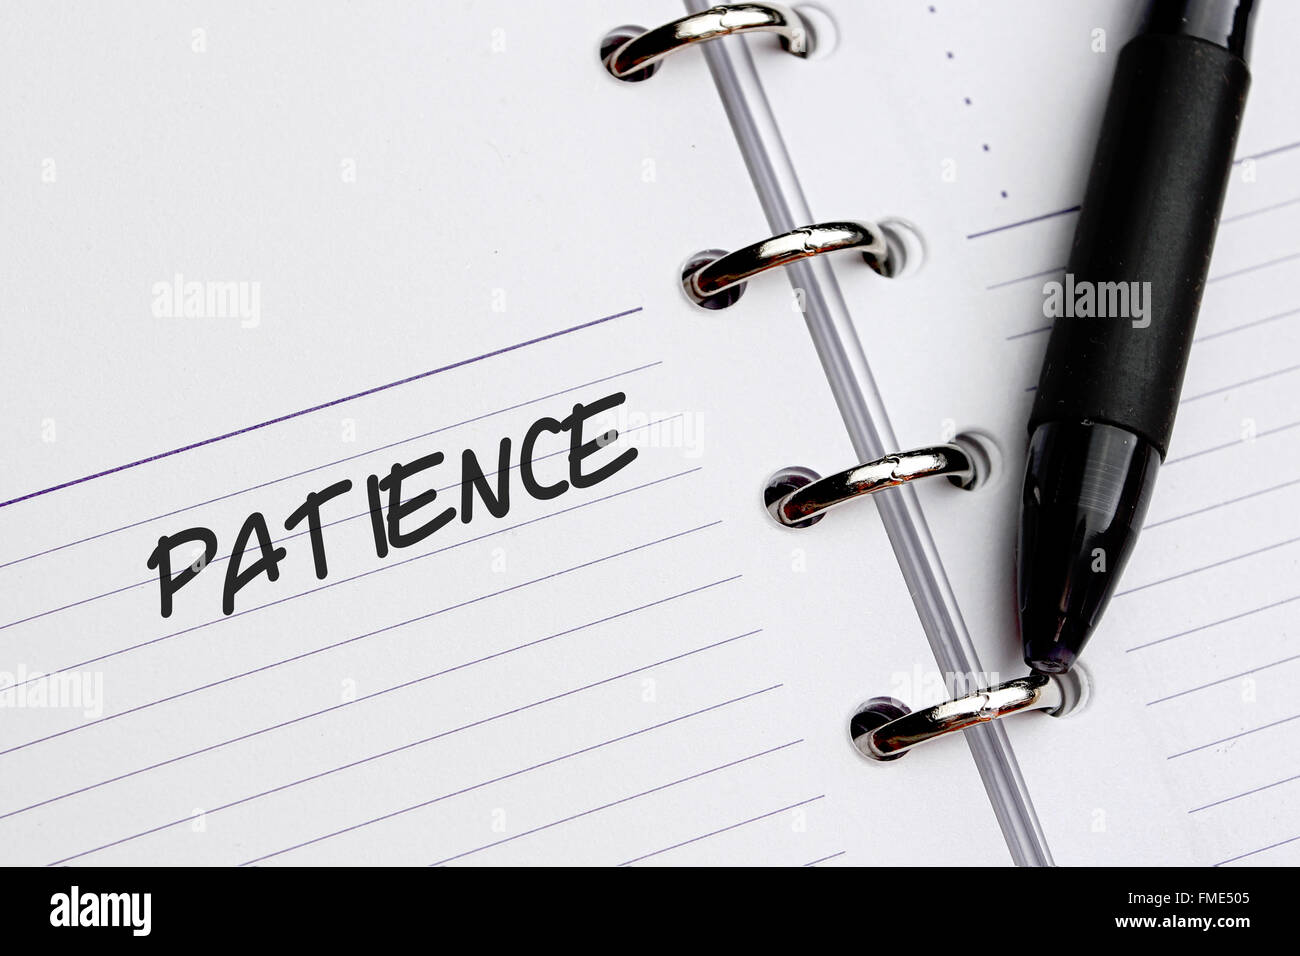 Patience word written on paper - Stock Image